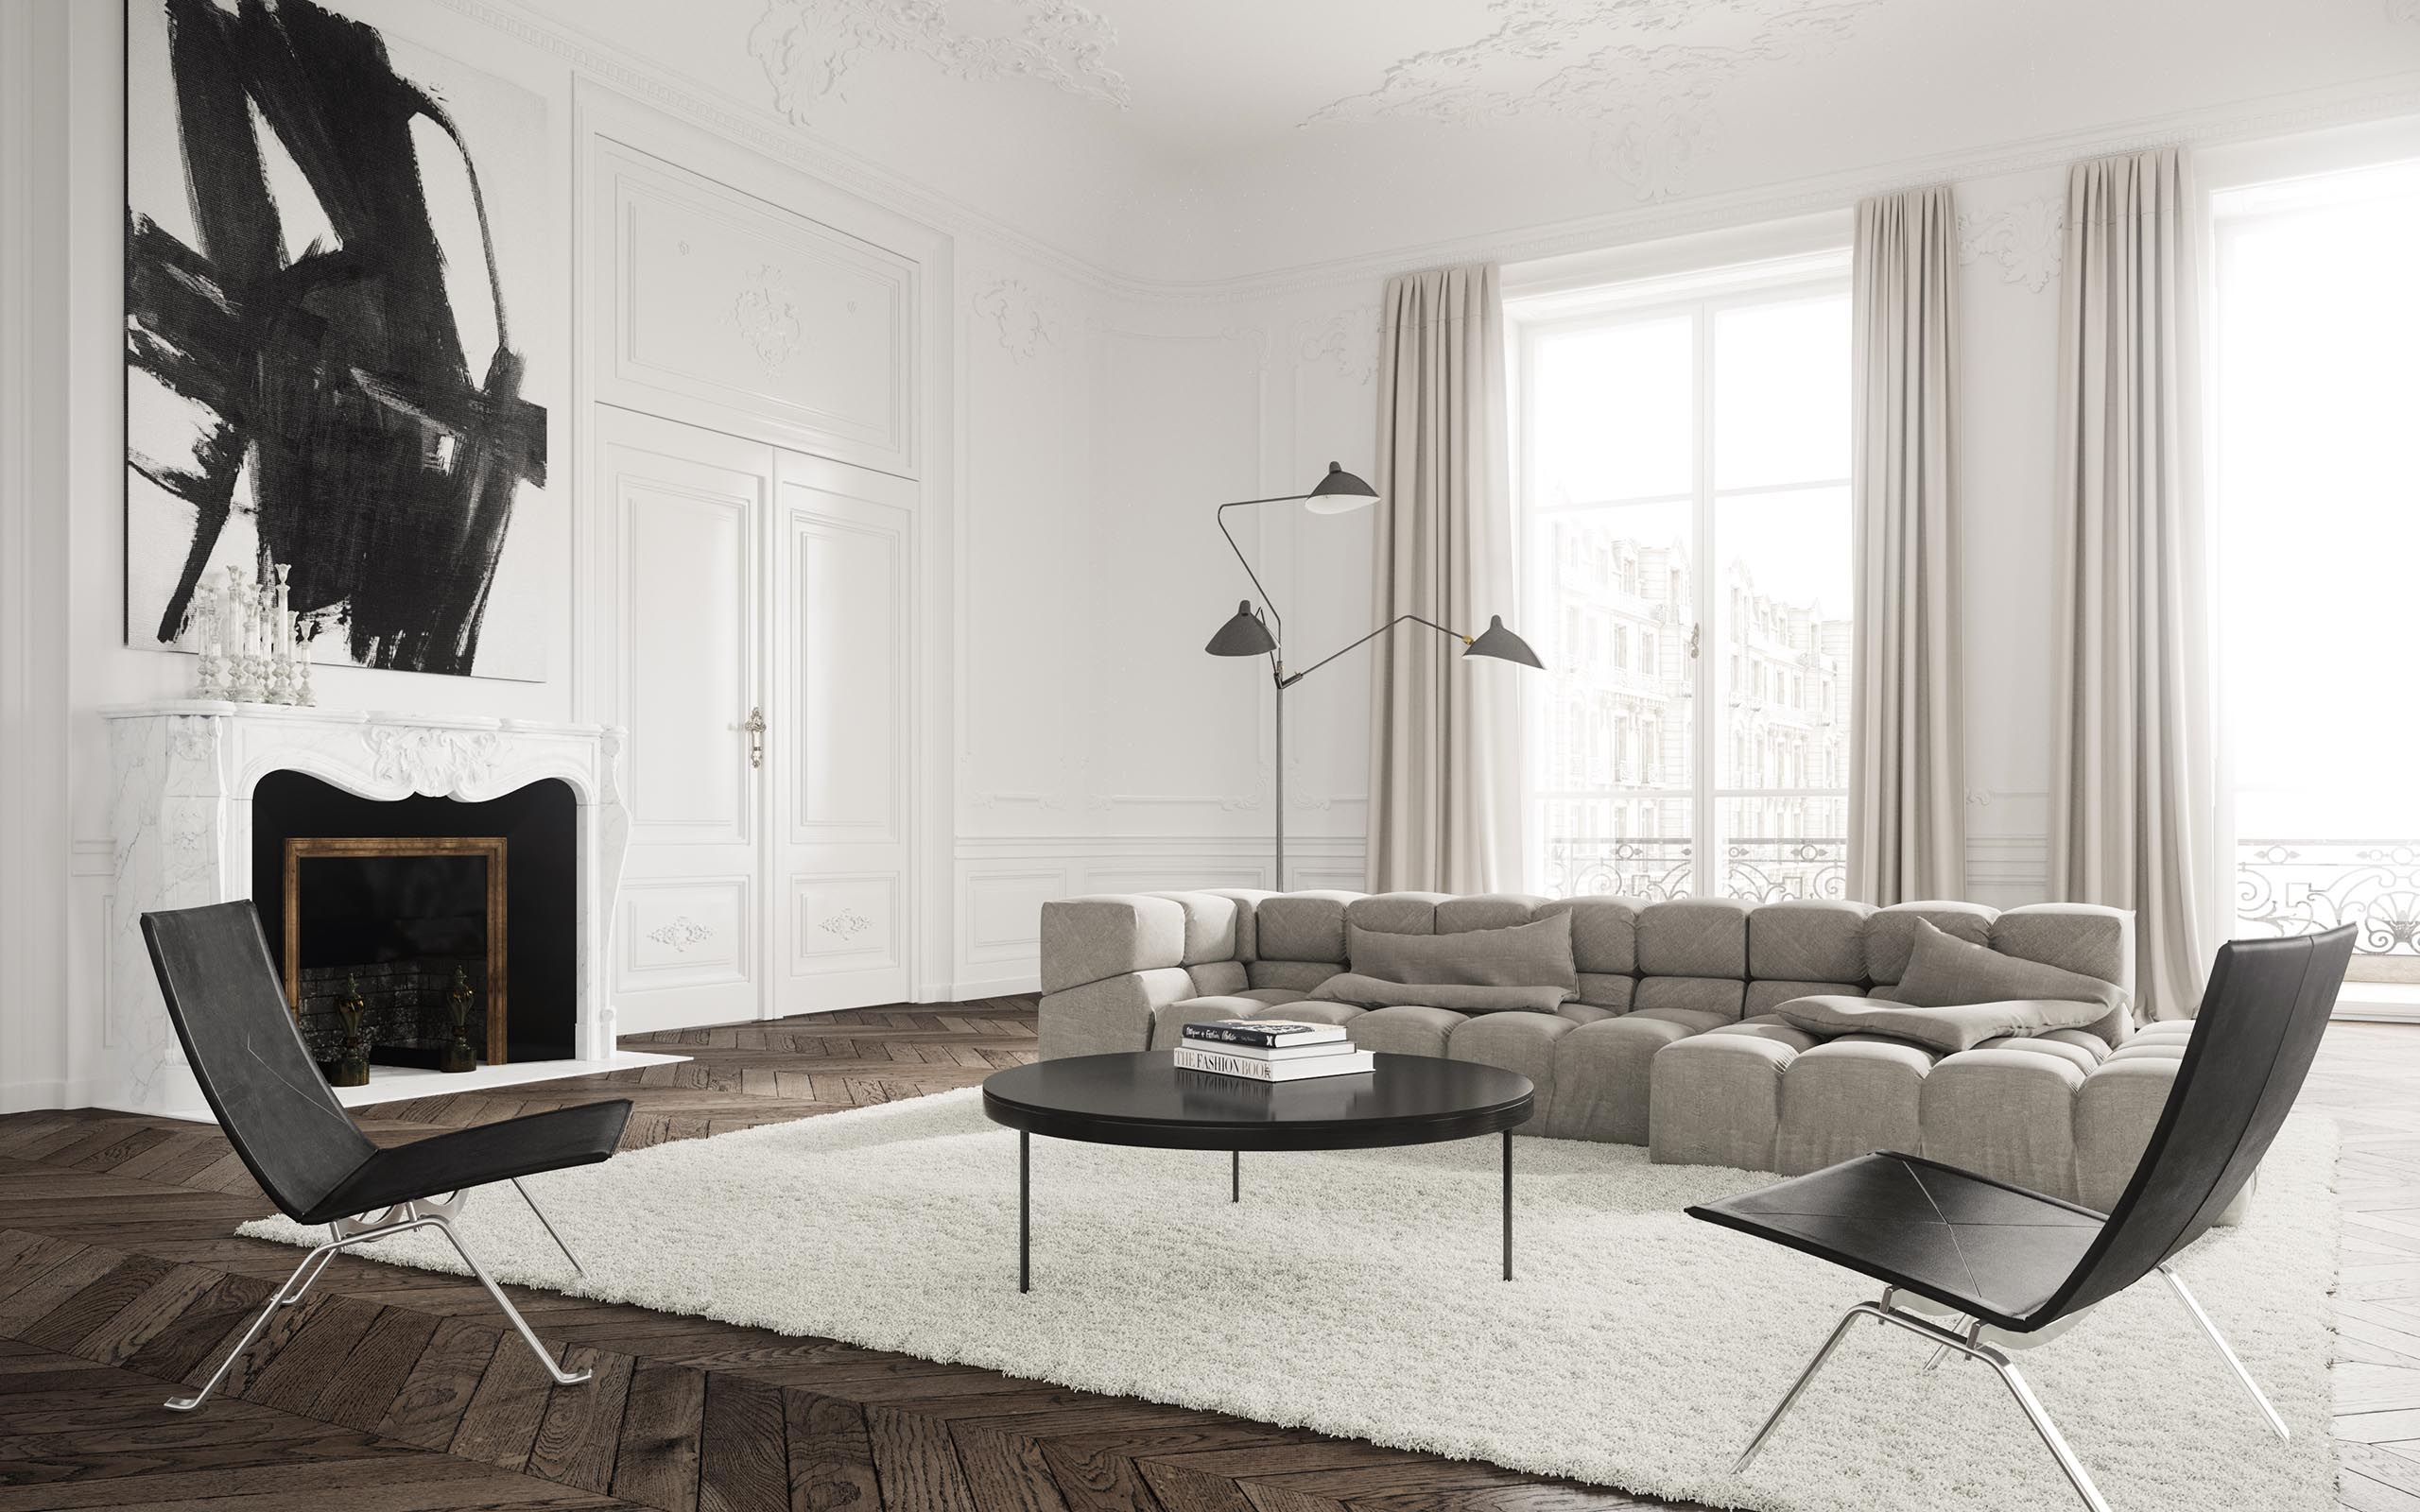 Couchtisch 2 Er Set Classical Apartment By Jessica Vedel - Talcik&demovicova